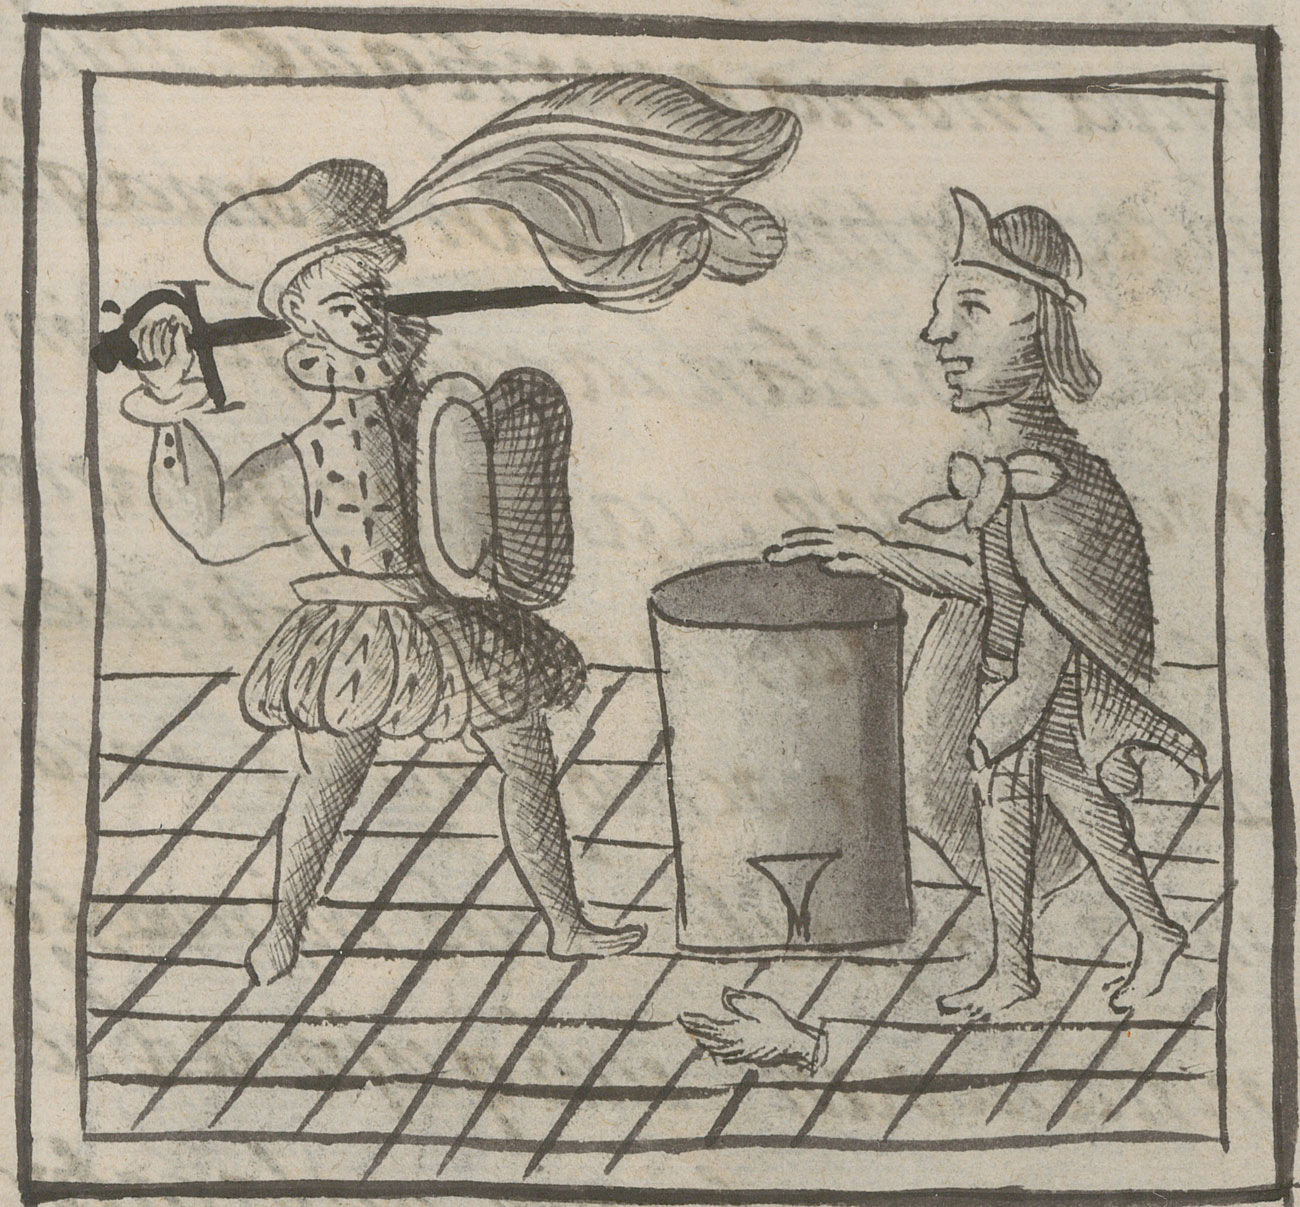 A Spaniard wearing a hat with a large plume raises his sword above a Mexica drummer, whose severed hand is lying on the ground next to his drum, in black and white drawing.